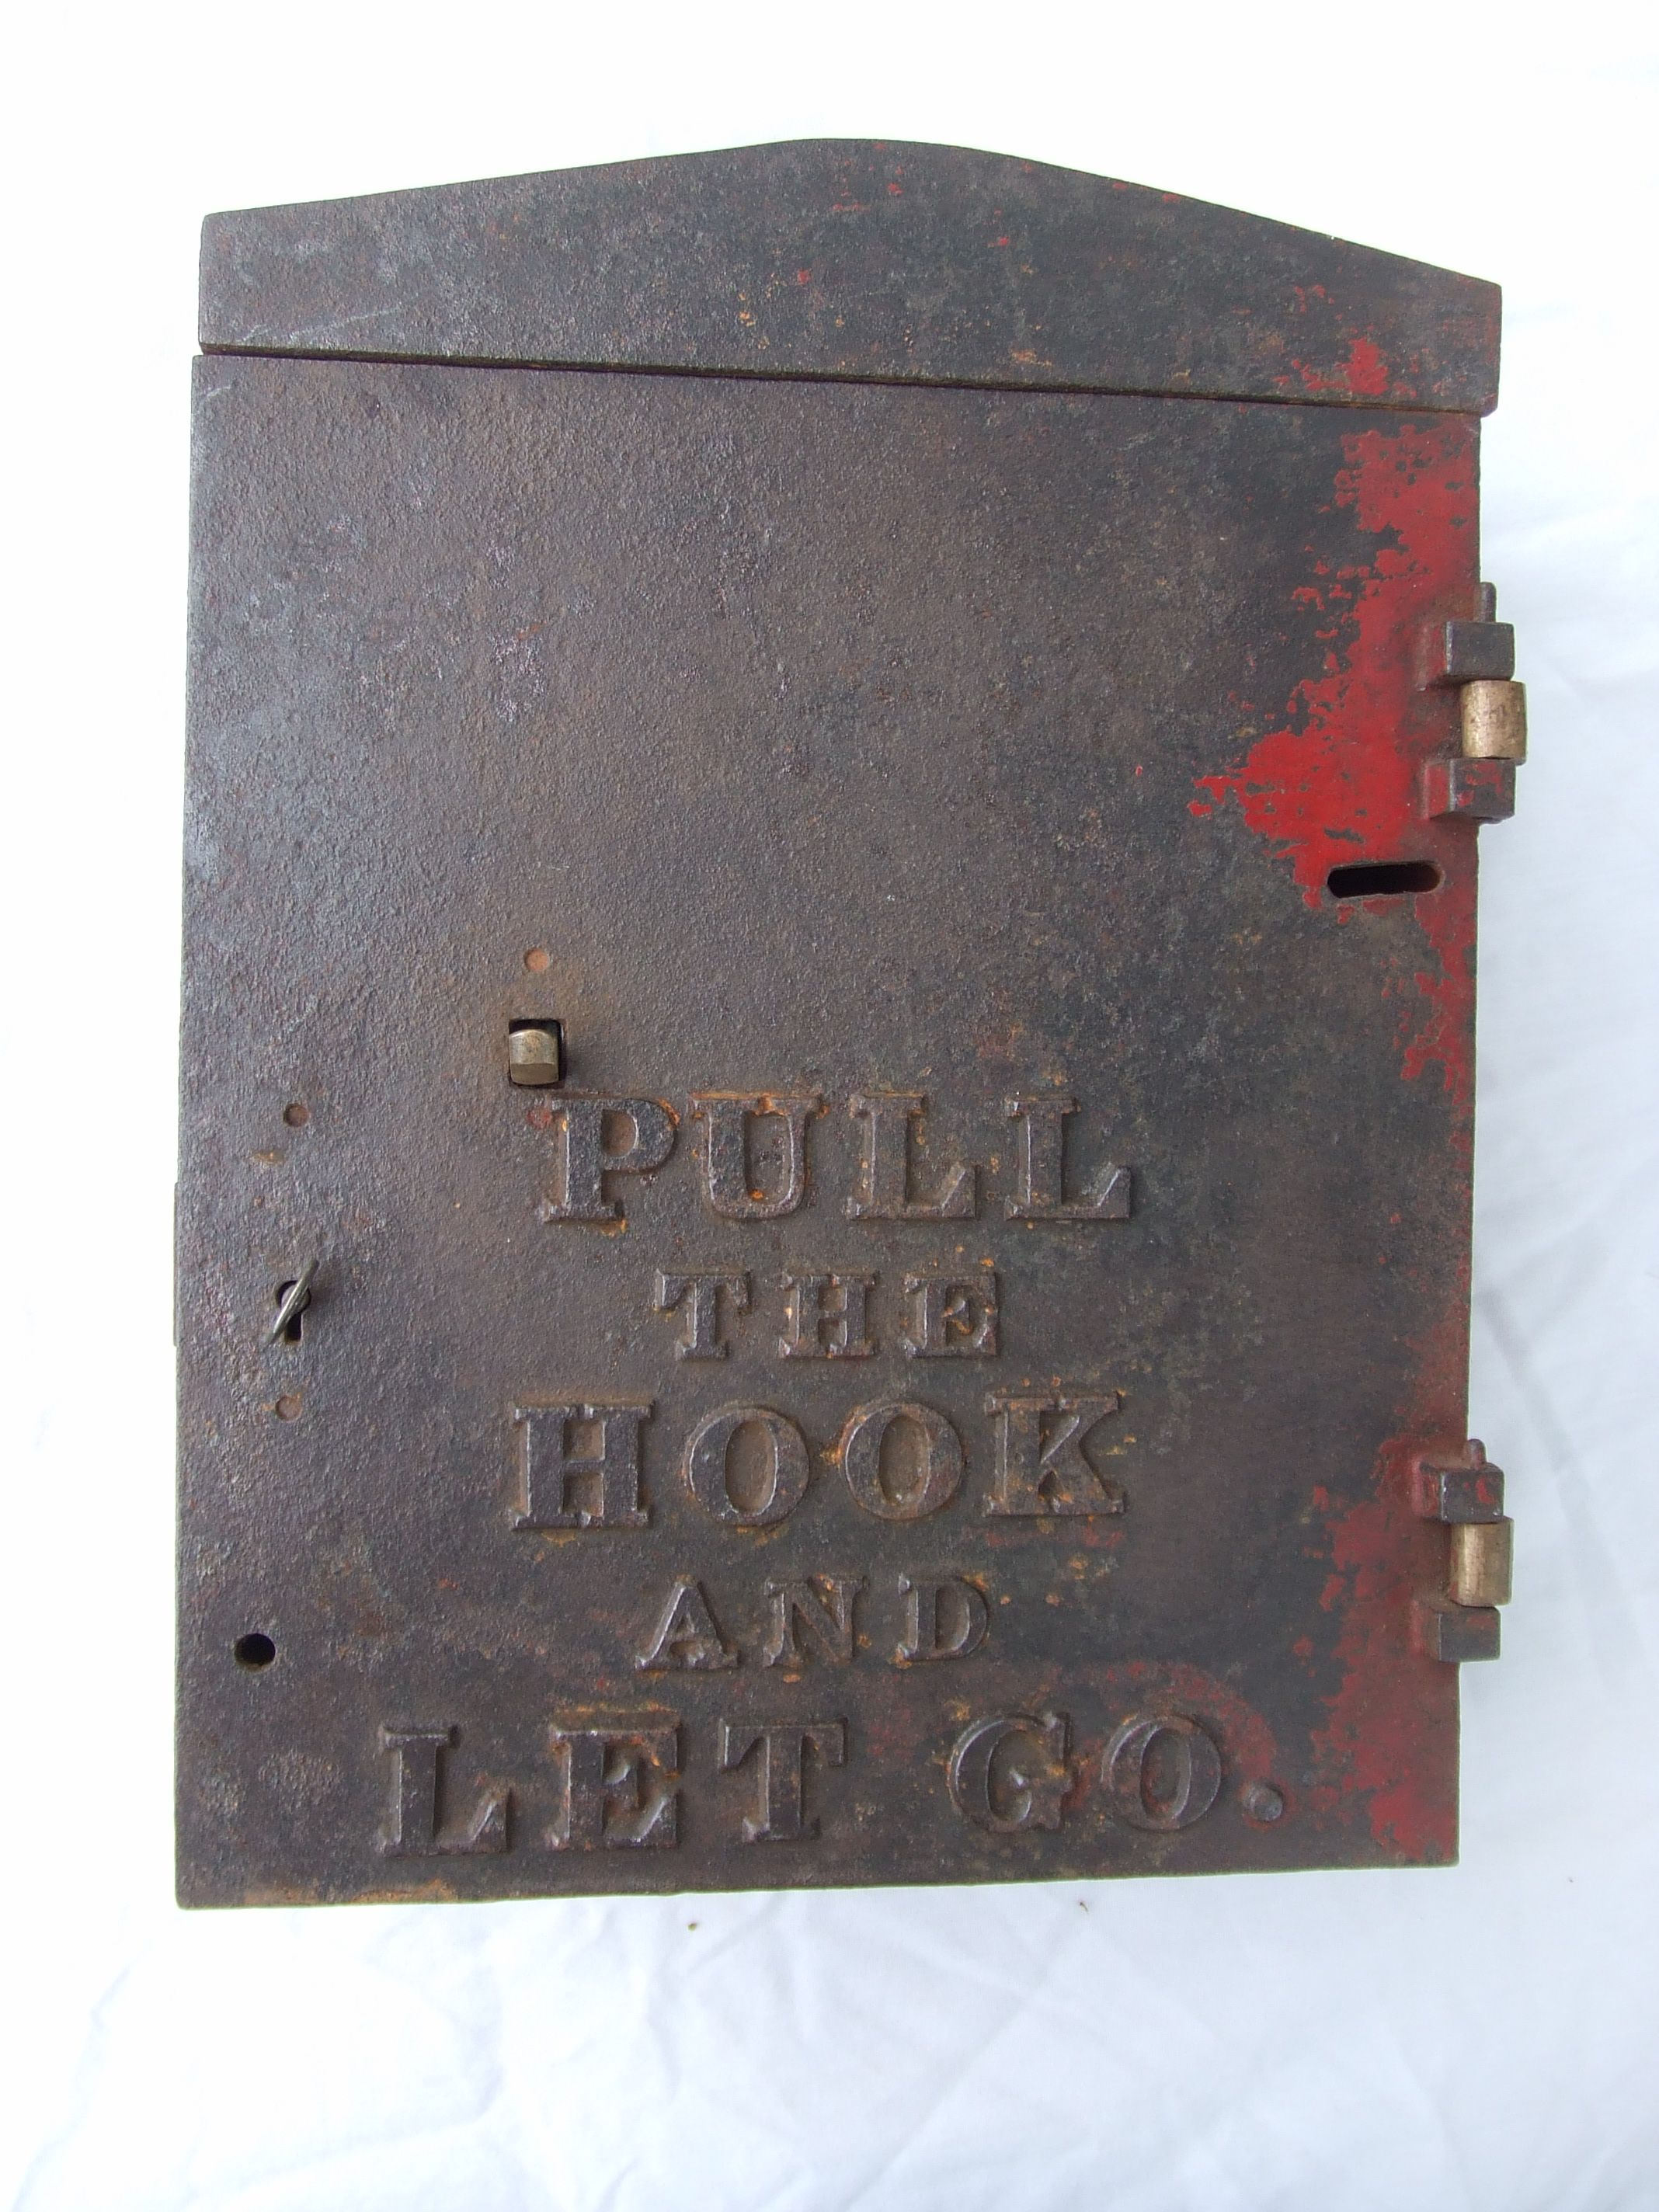 30ff5973b3cc4903cce9a68673cdb47b gamewell fire alarm telegraph box complete with smith keyguard gamewell fire alarm box wiring diagram at edmiracle.co